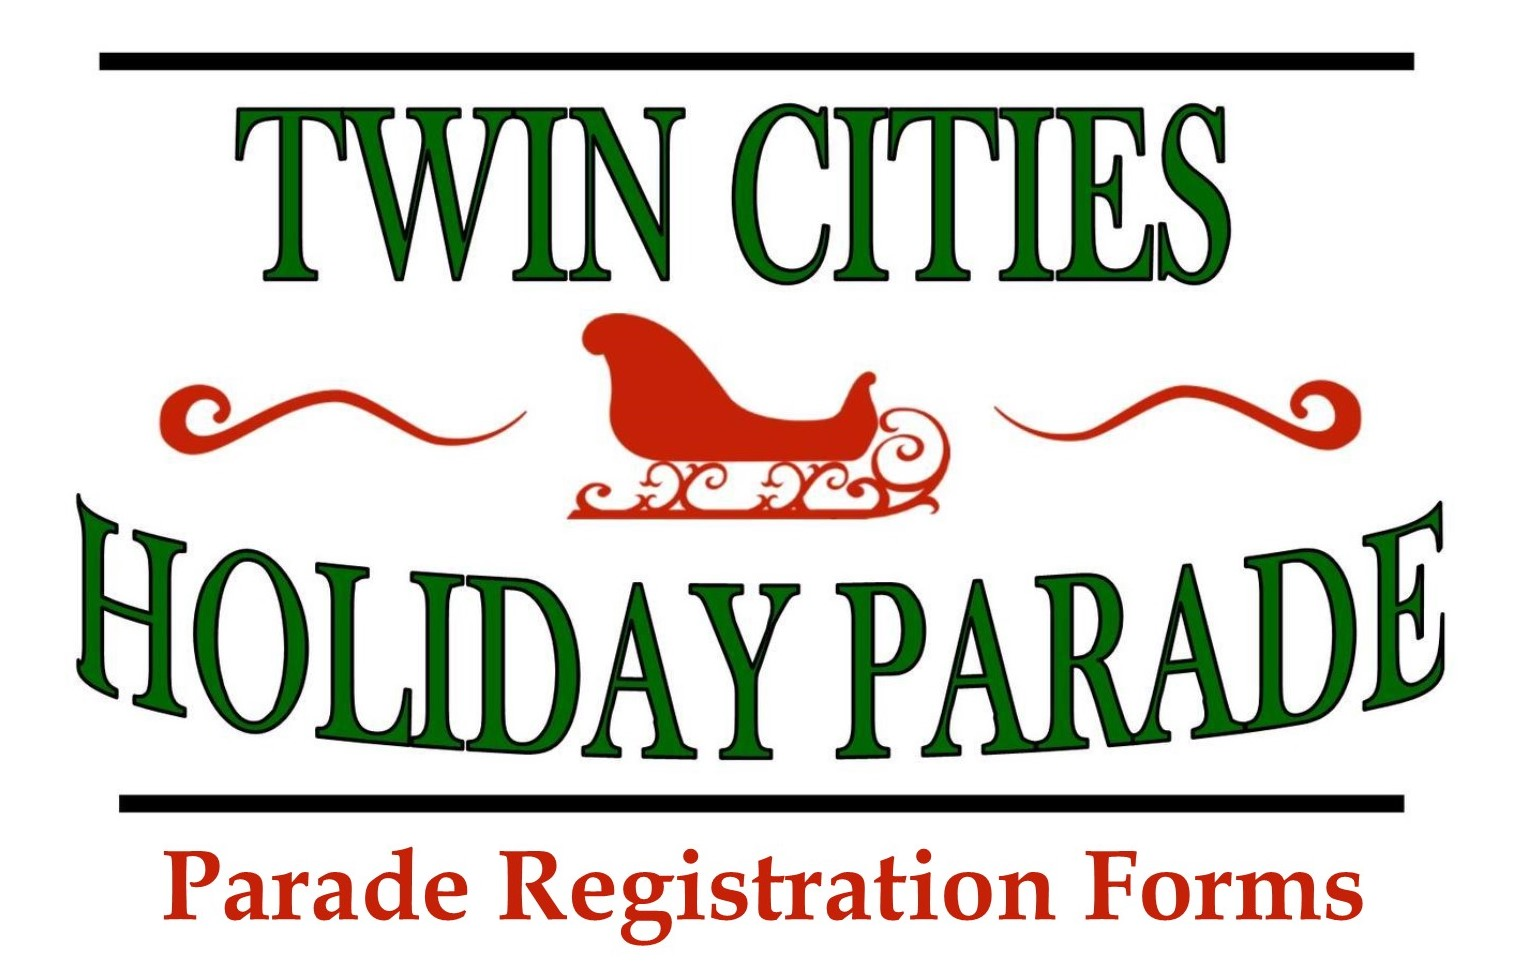 Twin Cities Holiday Parade registration form